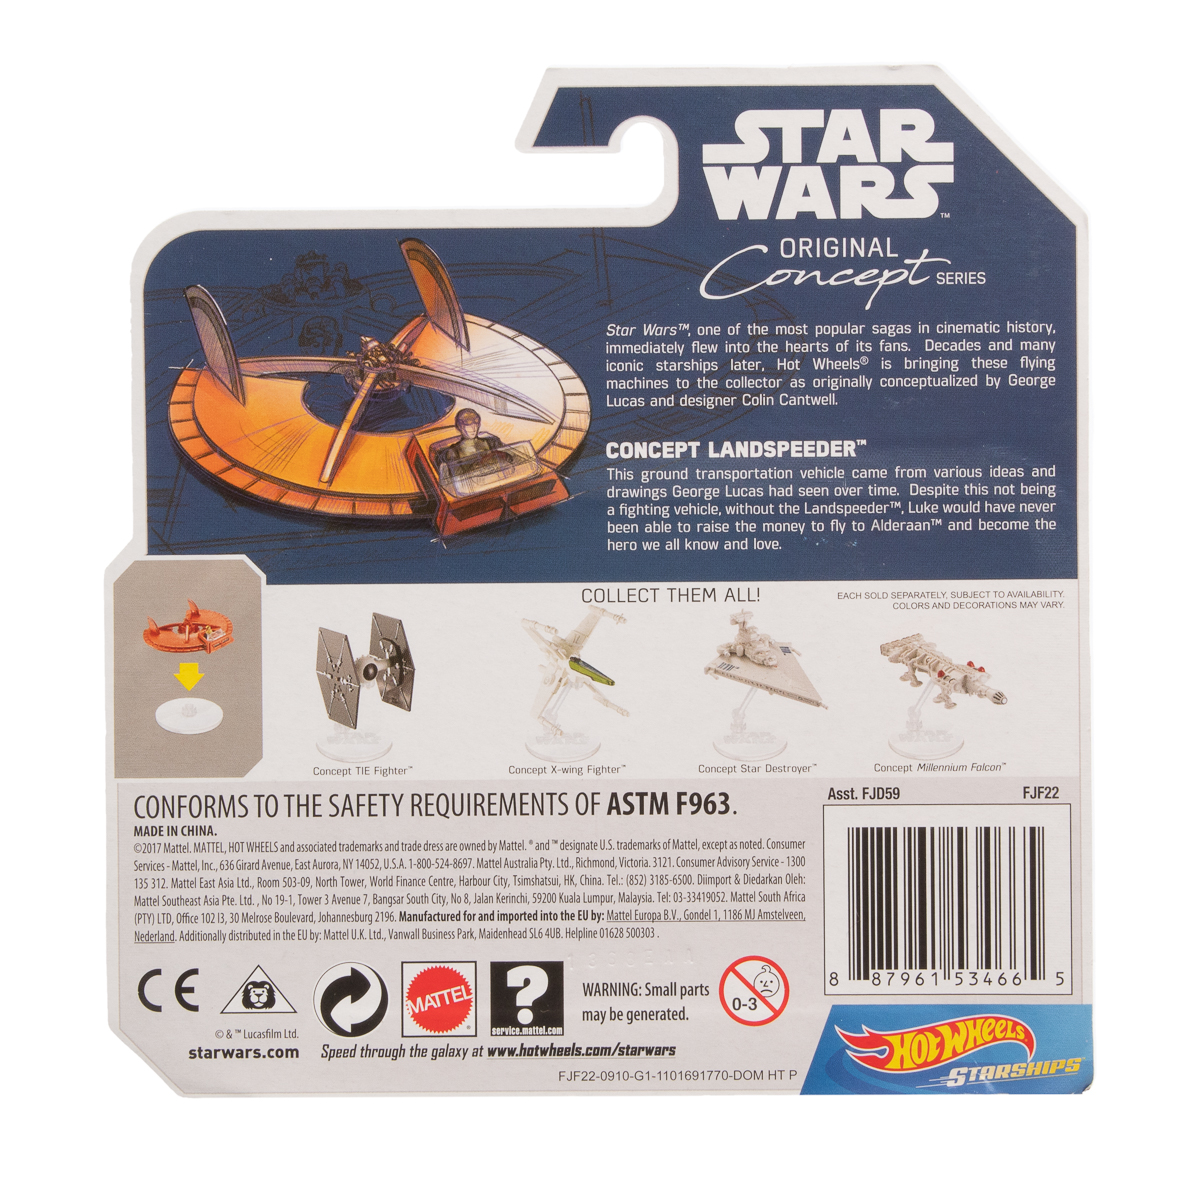 Hot-Wheels-Disney-Star-Wars-Original-Concept-Starships-Diecast-Model-Toys-Stands thumbnail 12